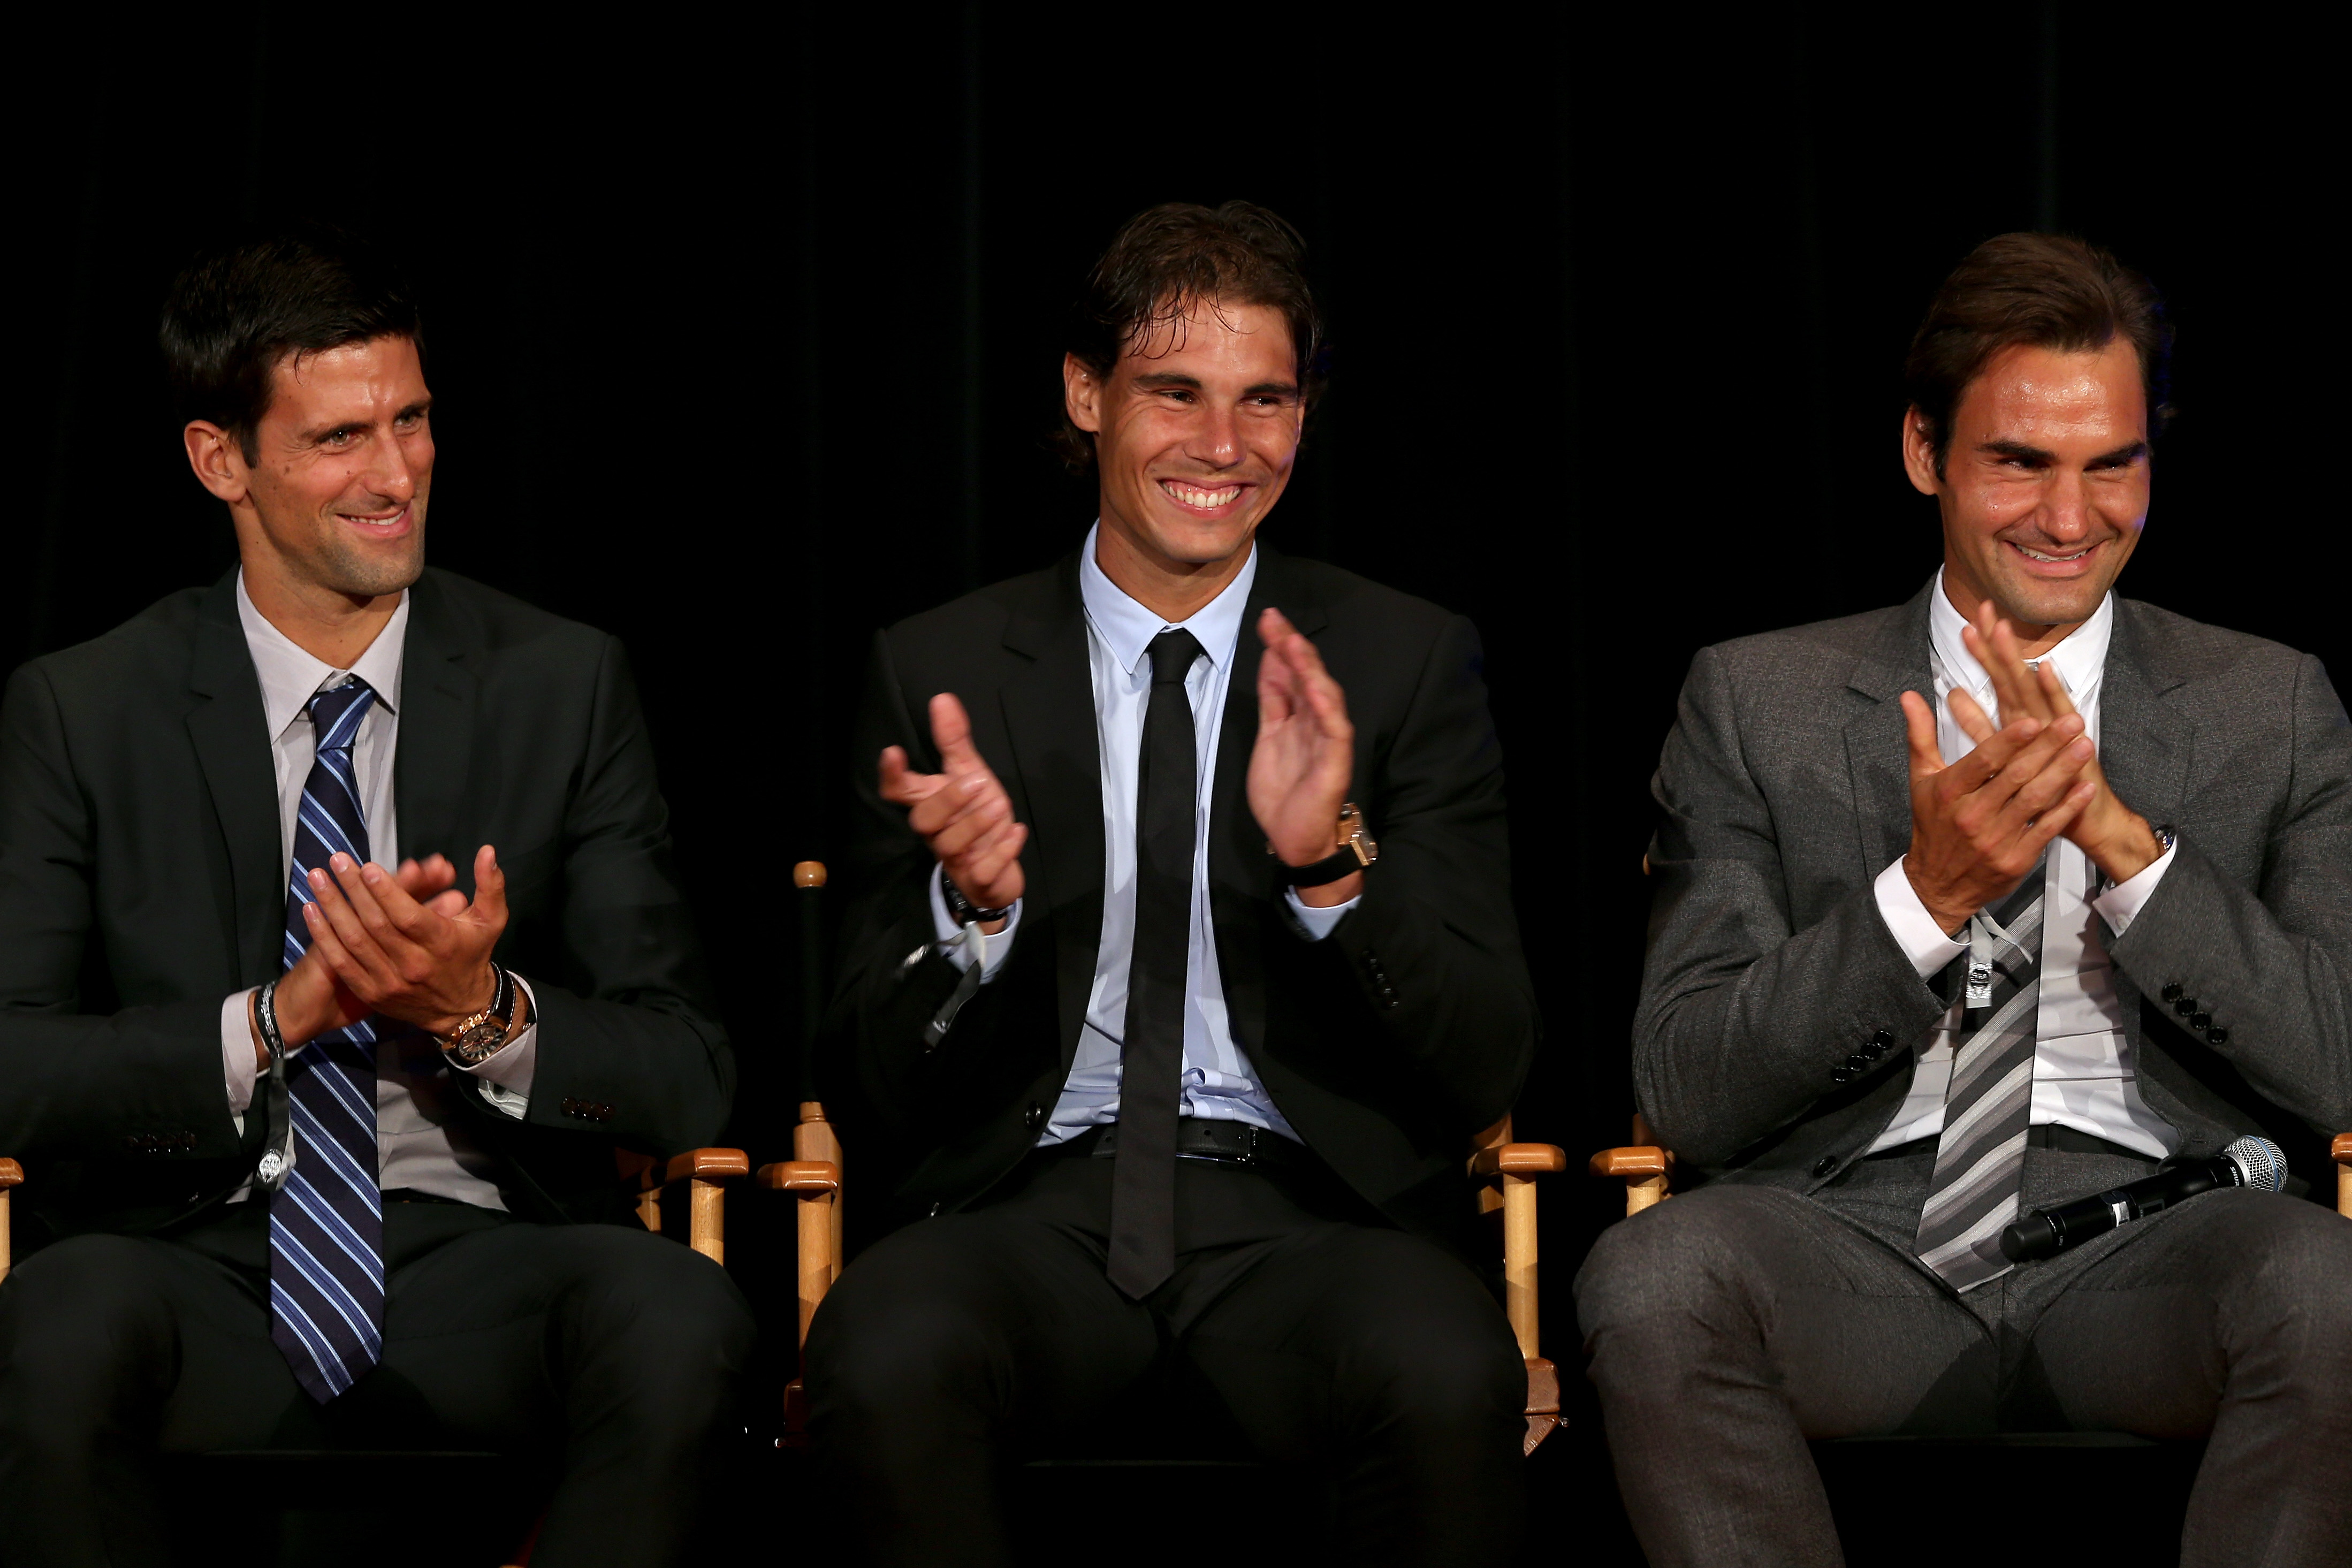 Djokovic, Nadal and Federer in New York City. (Photo by Matthew Stockman/Getty Images)